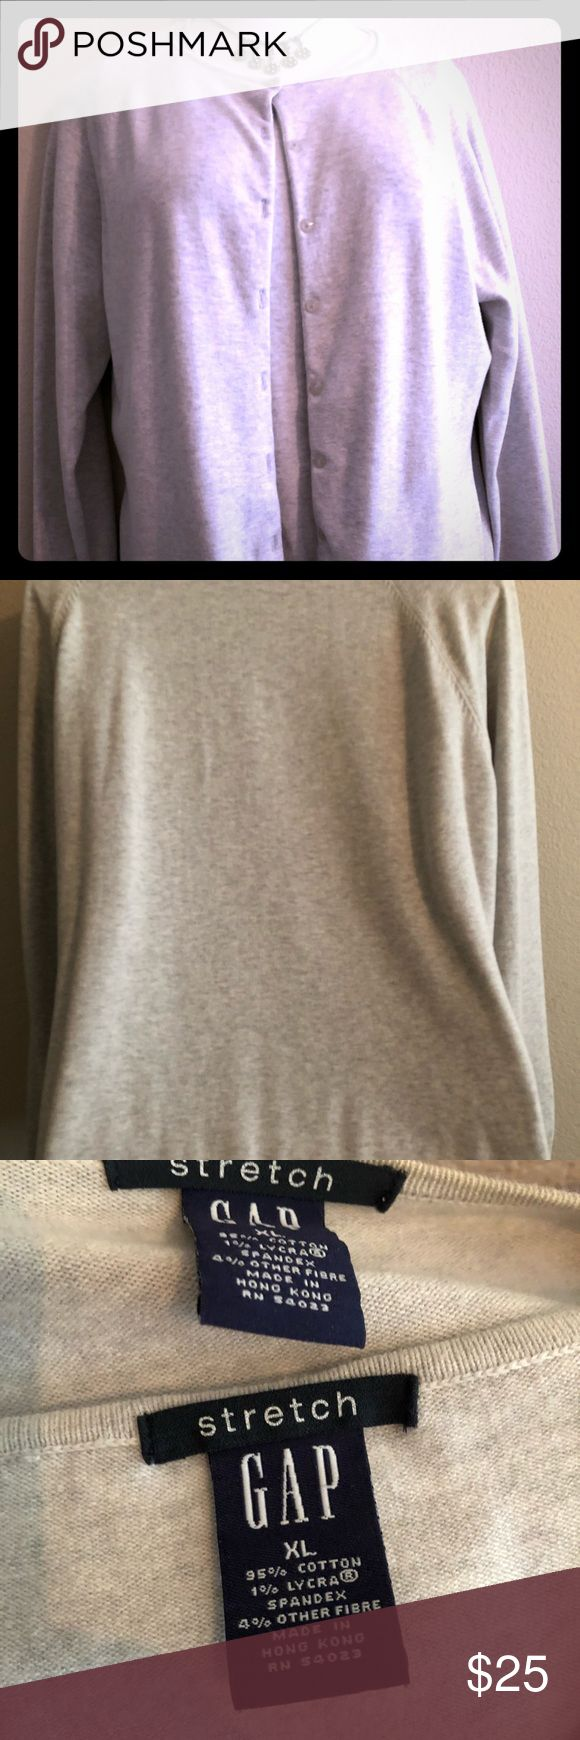 GAP  2 pc. Sweater set. Light grey, XL GAP 2 piece sweater set. Light grey stretch cotton / Lycra spandex. Very comfortable sweater set that can be worn with jeans or a skirt! XL GAP Sweaters Crew & Scoop Necks